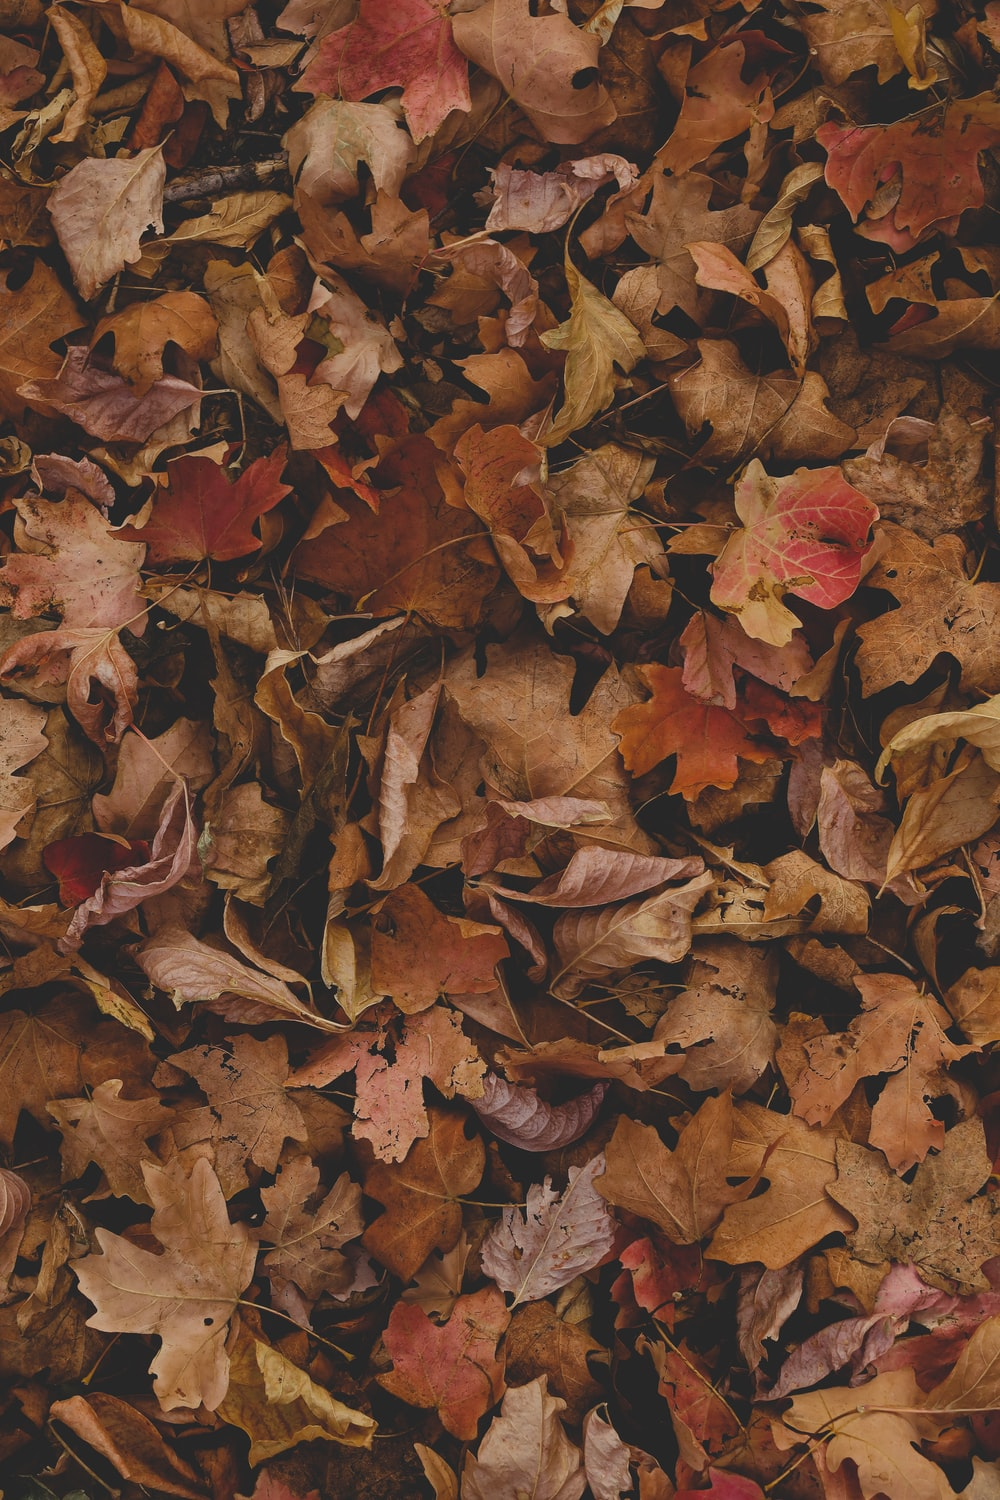 red and brown leaves on ground